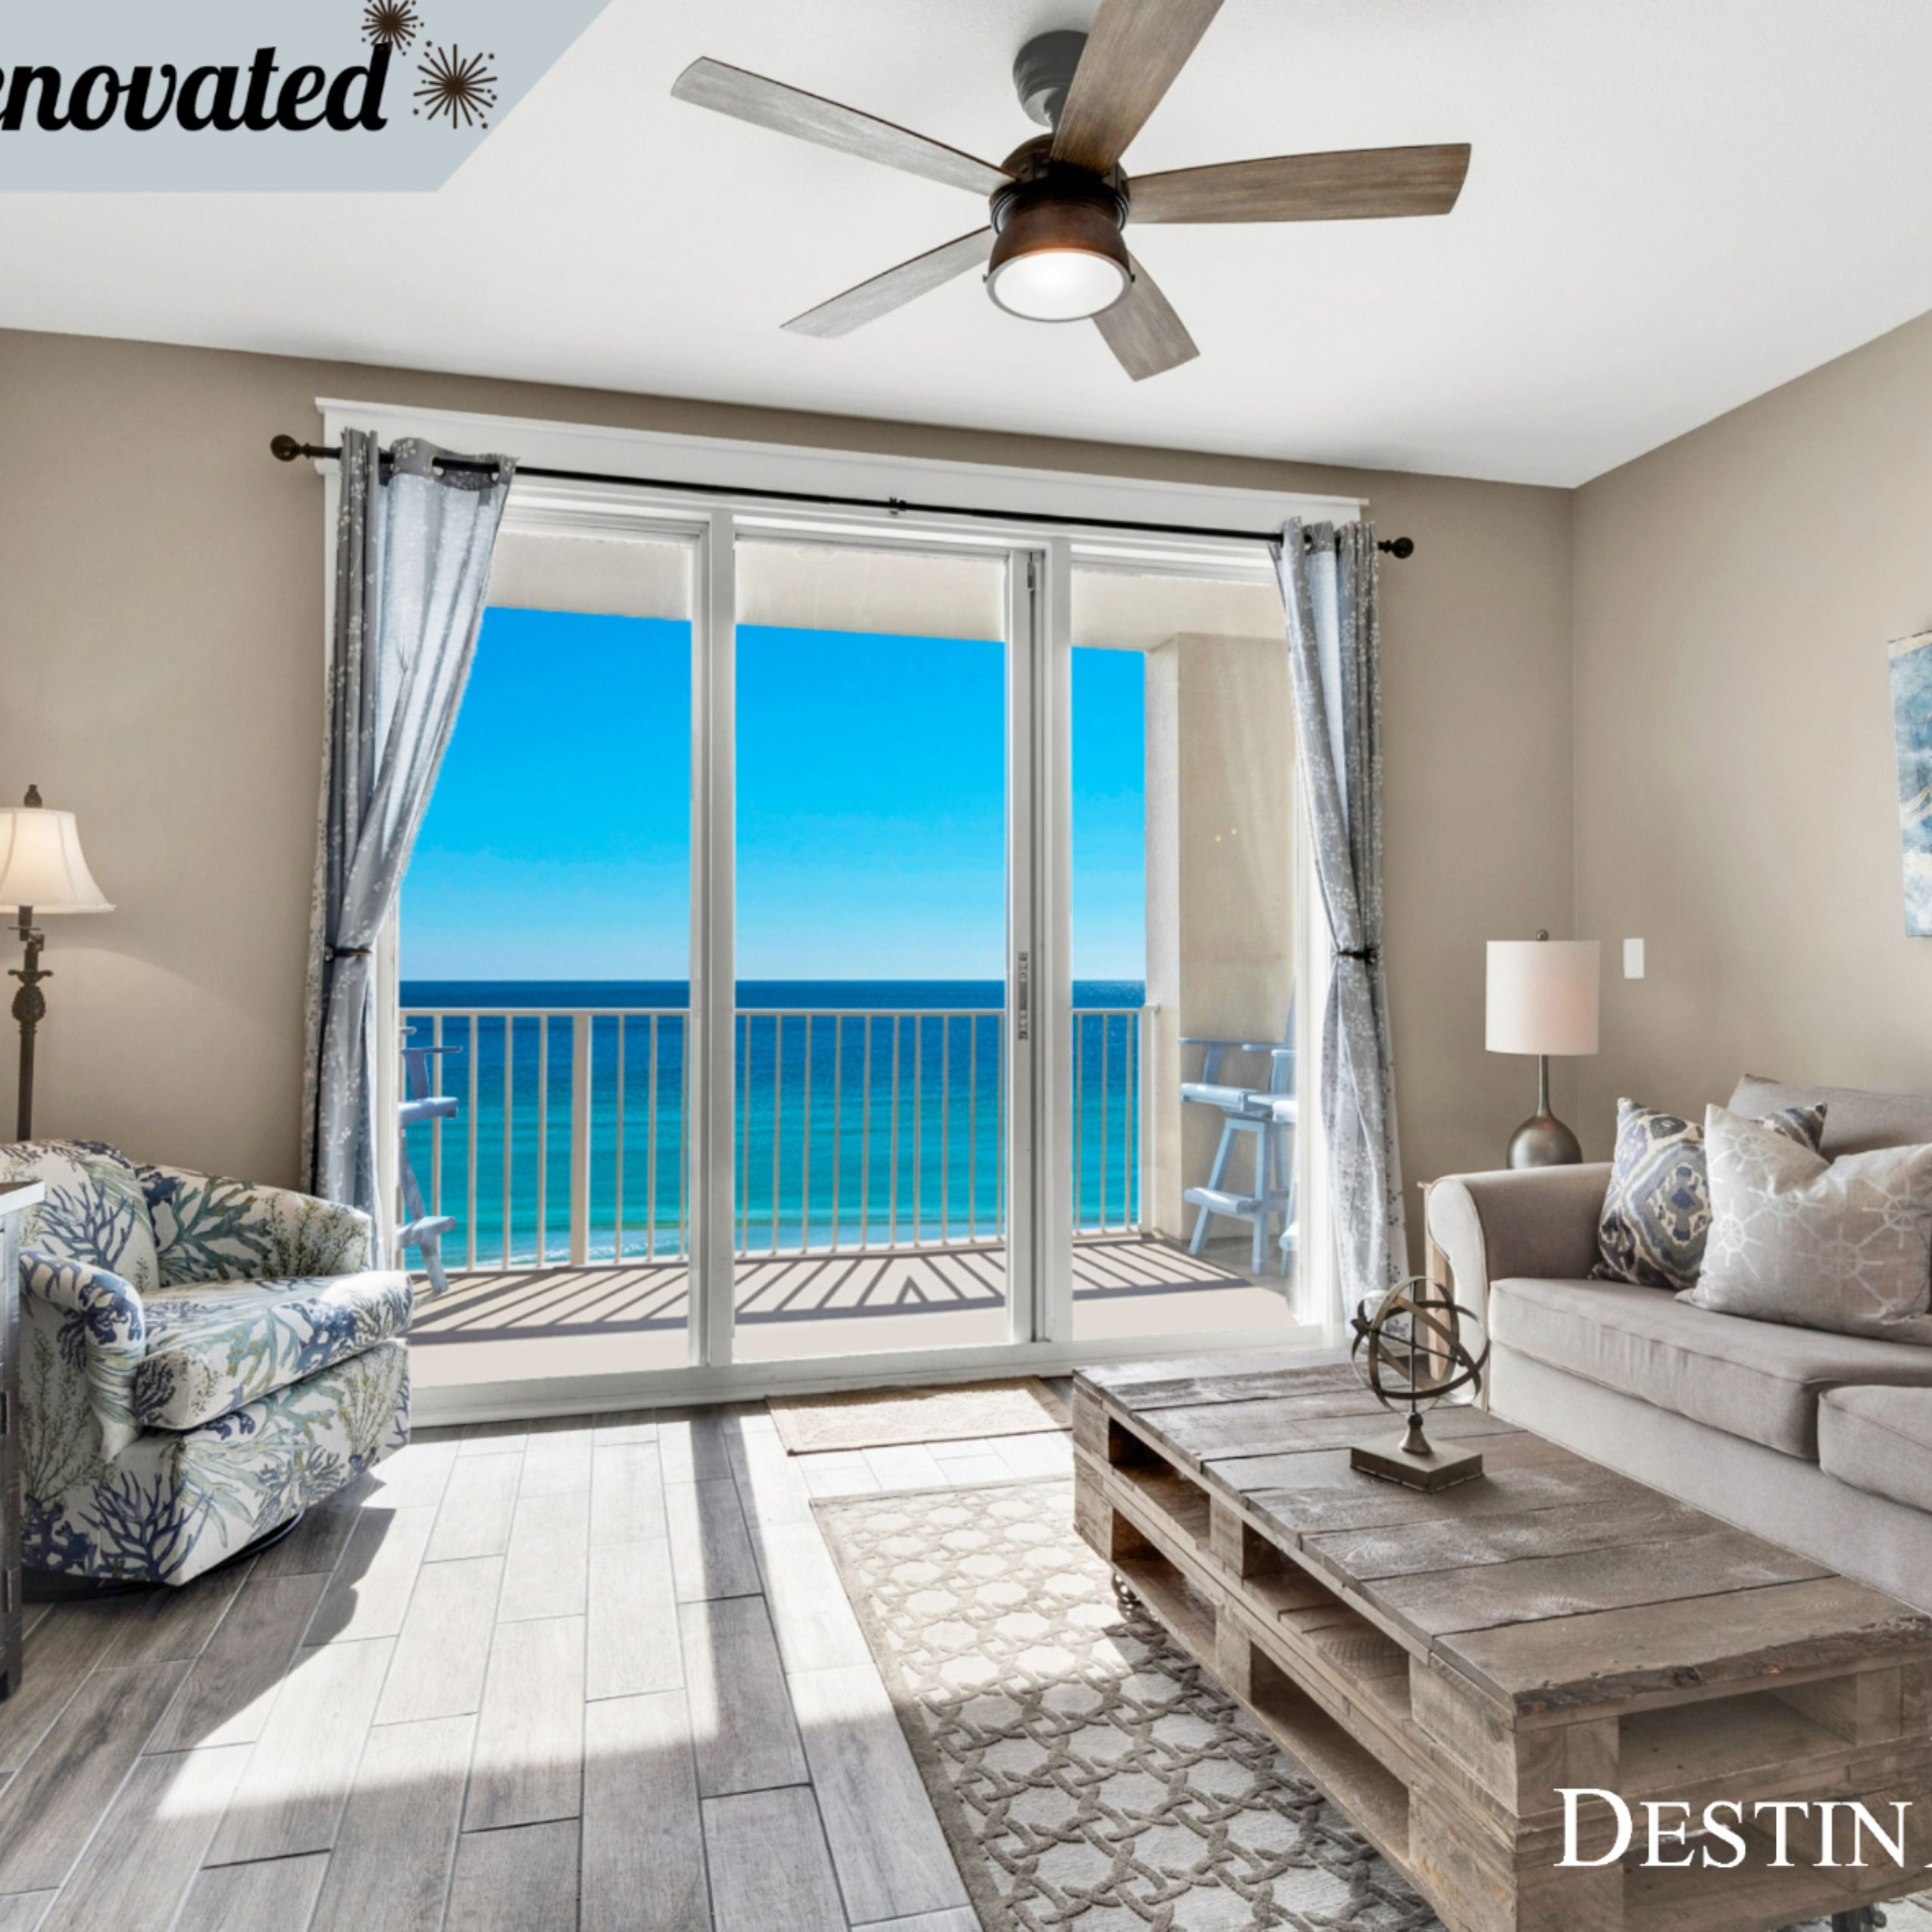 This newly renovated vacation rental condo in Destin, FL